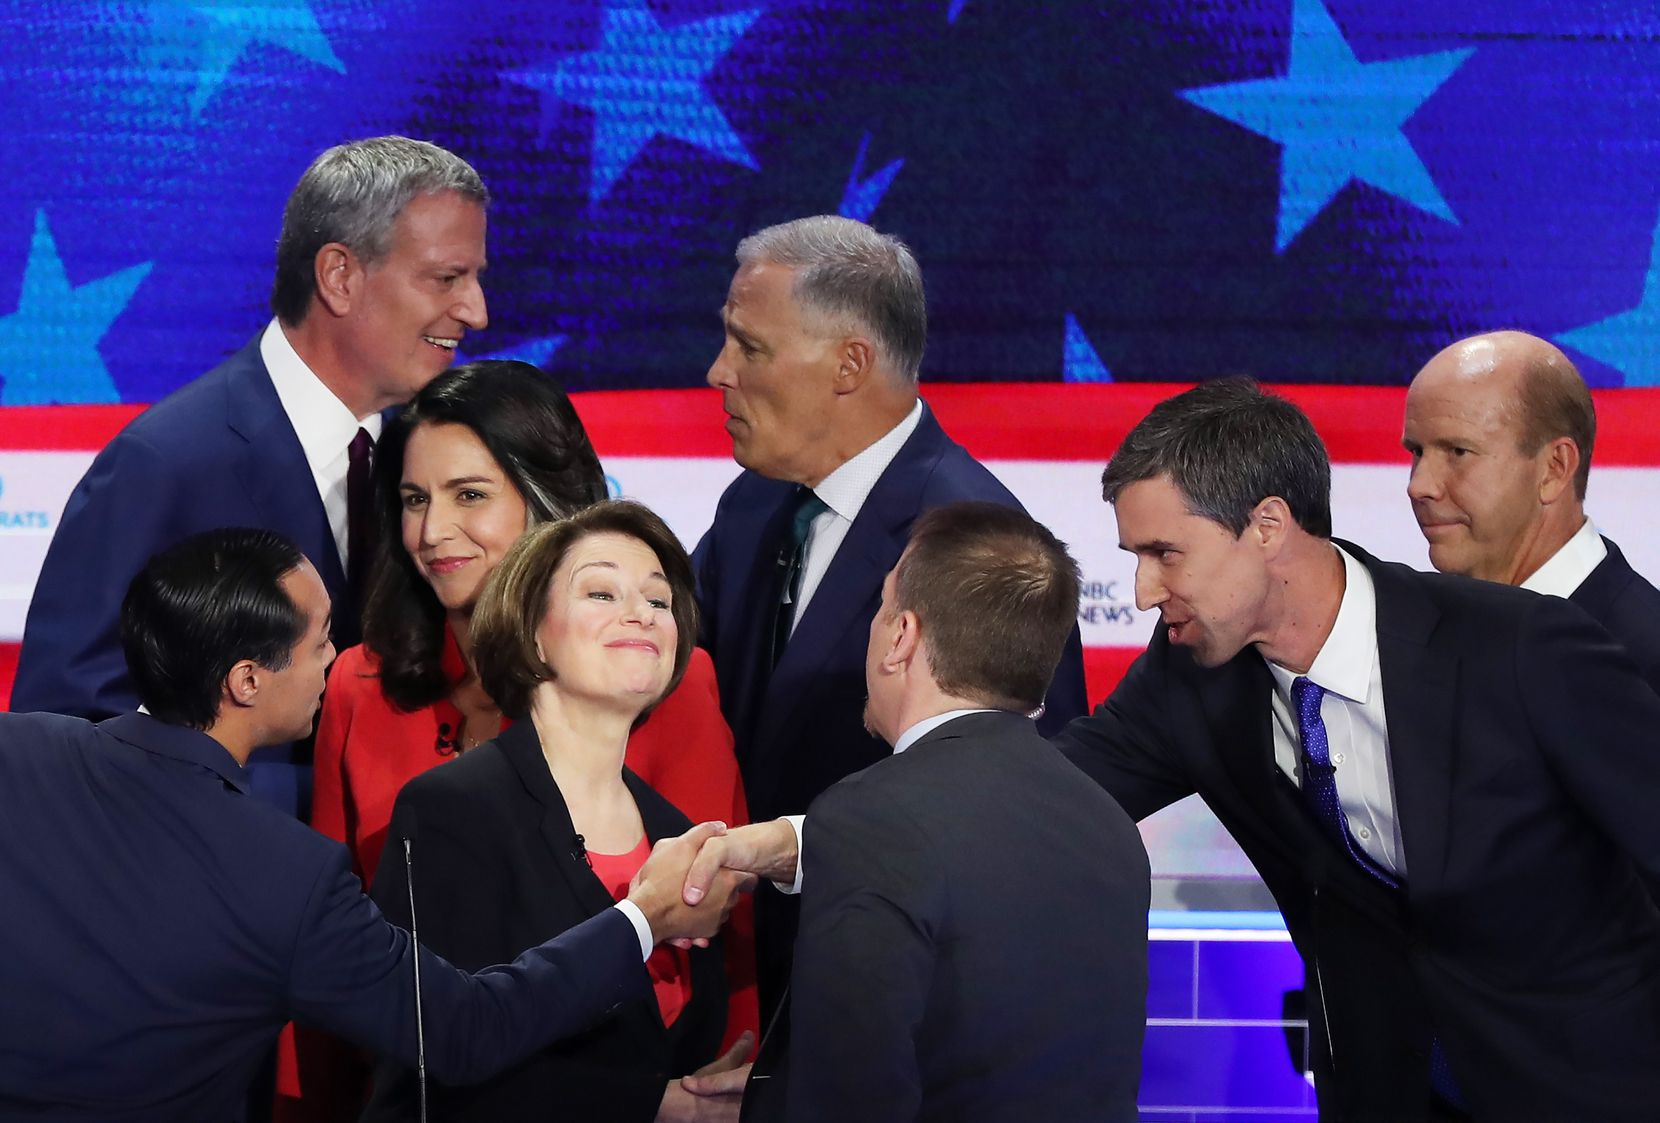 Former U.S. housing secretary Julian Castro (far left) and former Texas congressman Beto O'Rourke (2nd from right) reach to shake hands after the first night of the Democratic presidential debate on June 26, 2019 in Miami, Florida.